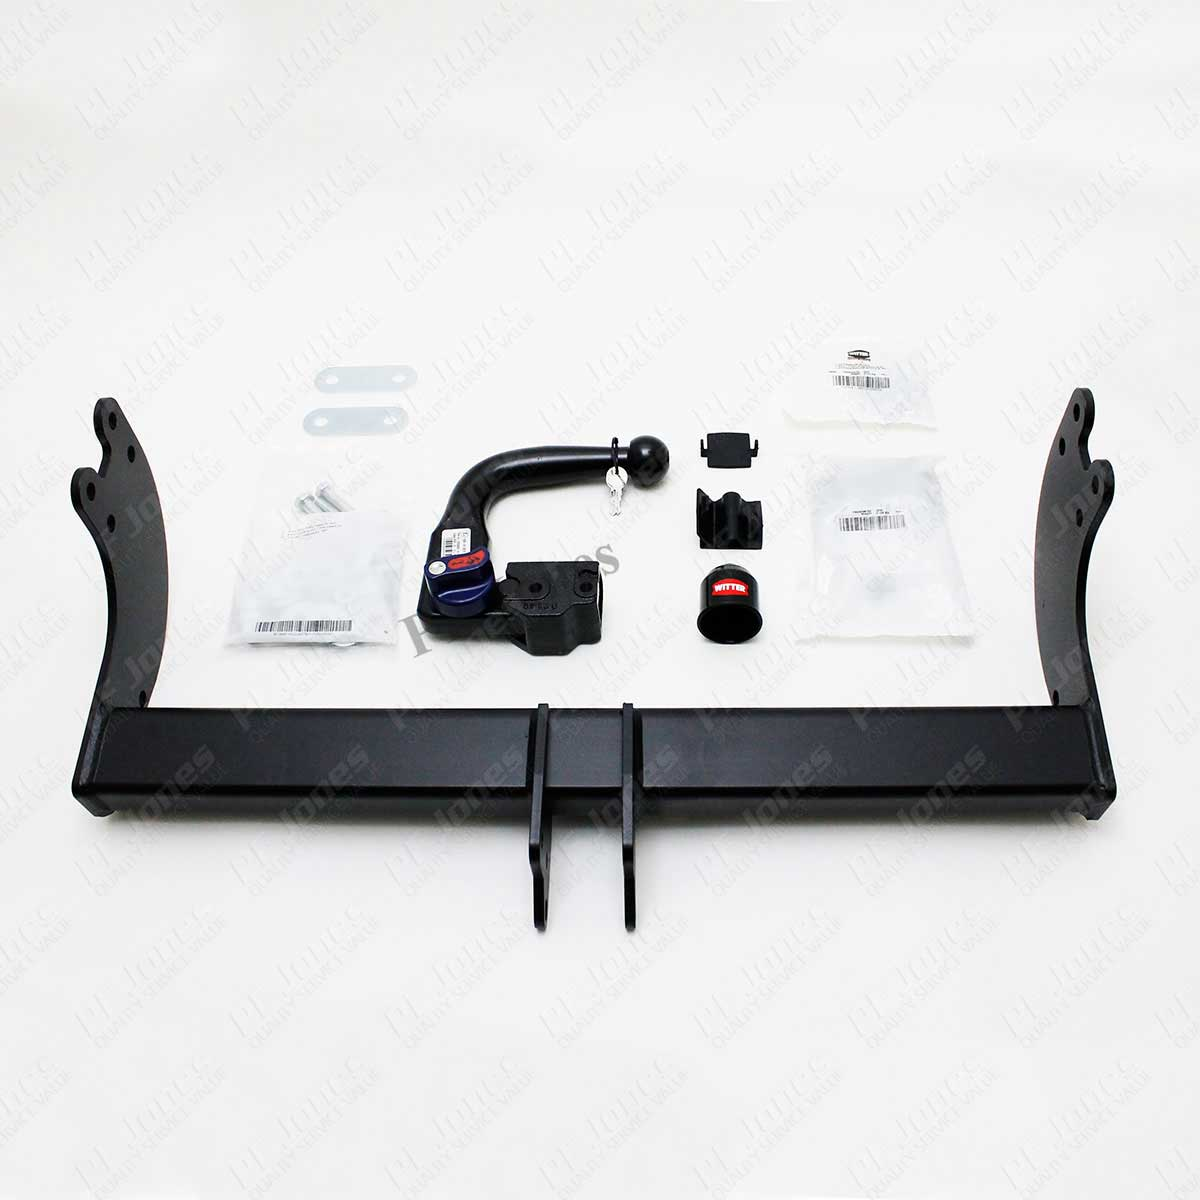 Ford Transit Witter Vertical Detachable tow bar